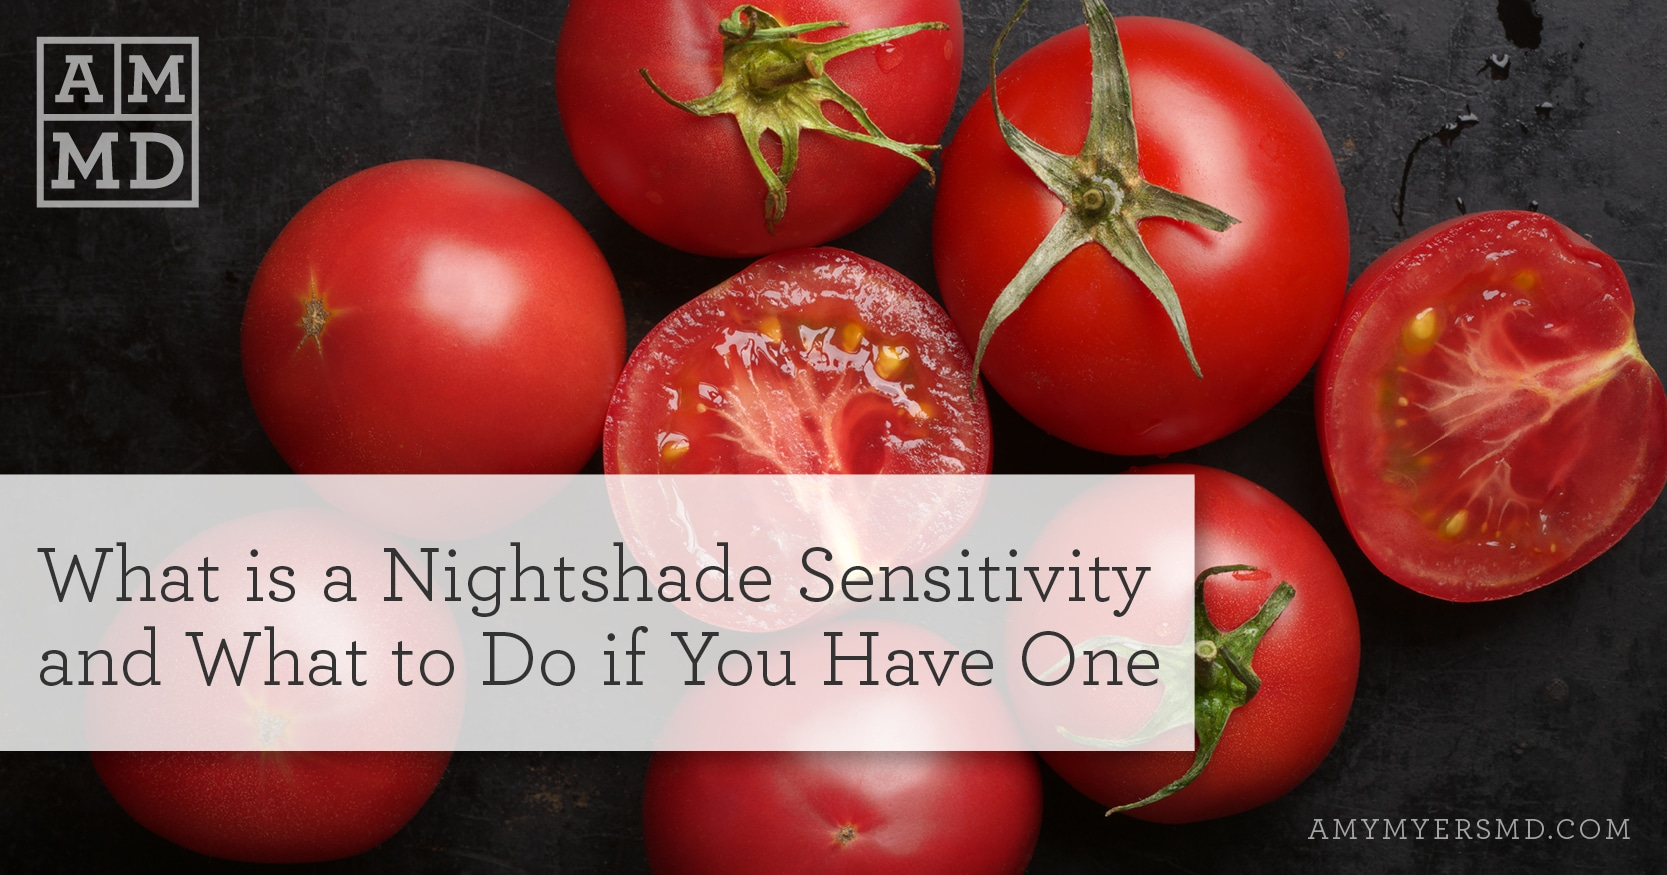 What is a Nightshade Sensitivity - Tomatoes - Featured Image - Amy Myers MD